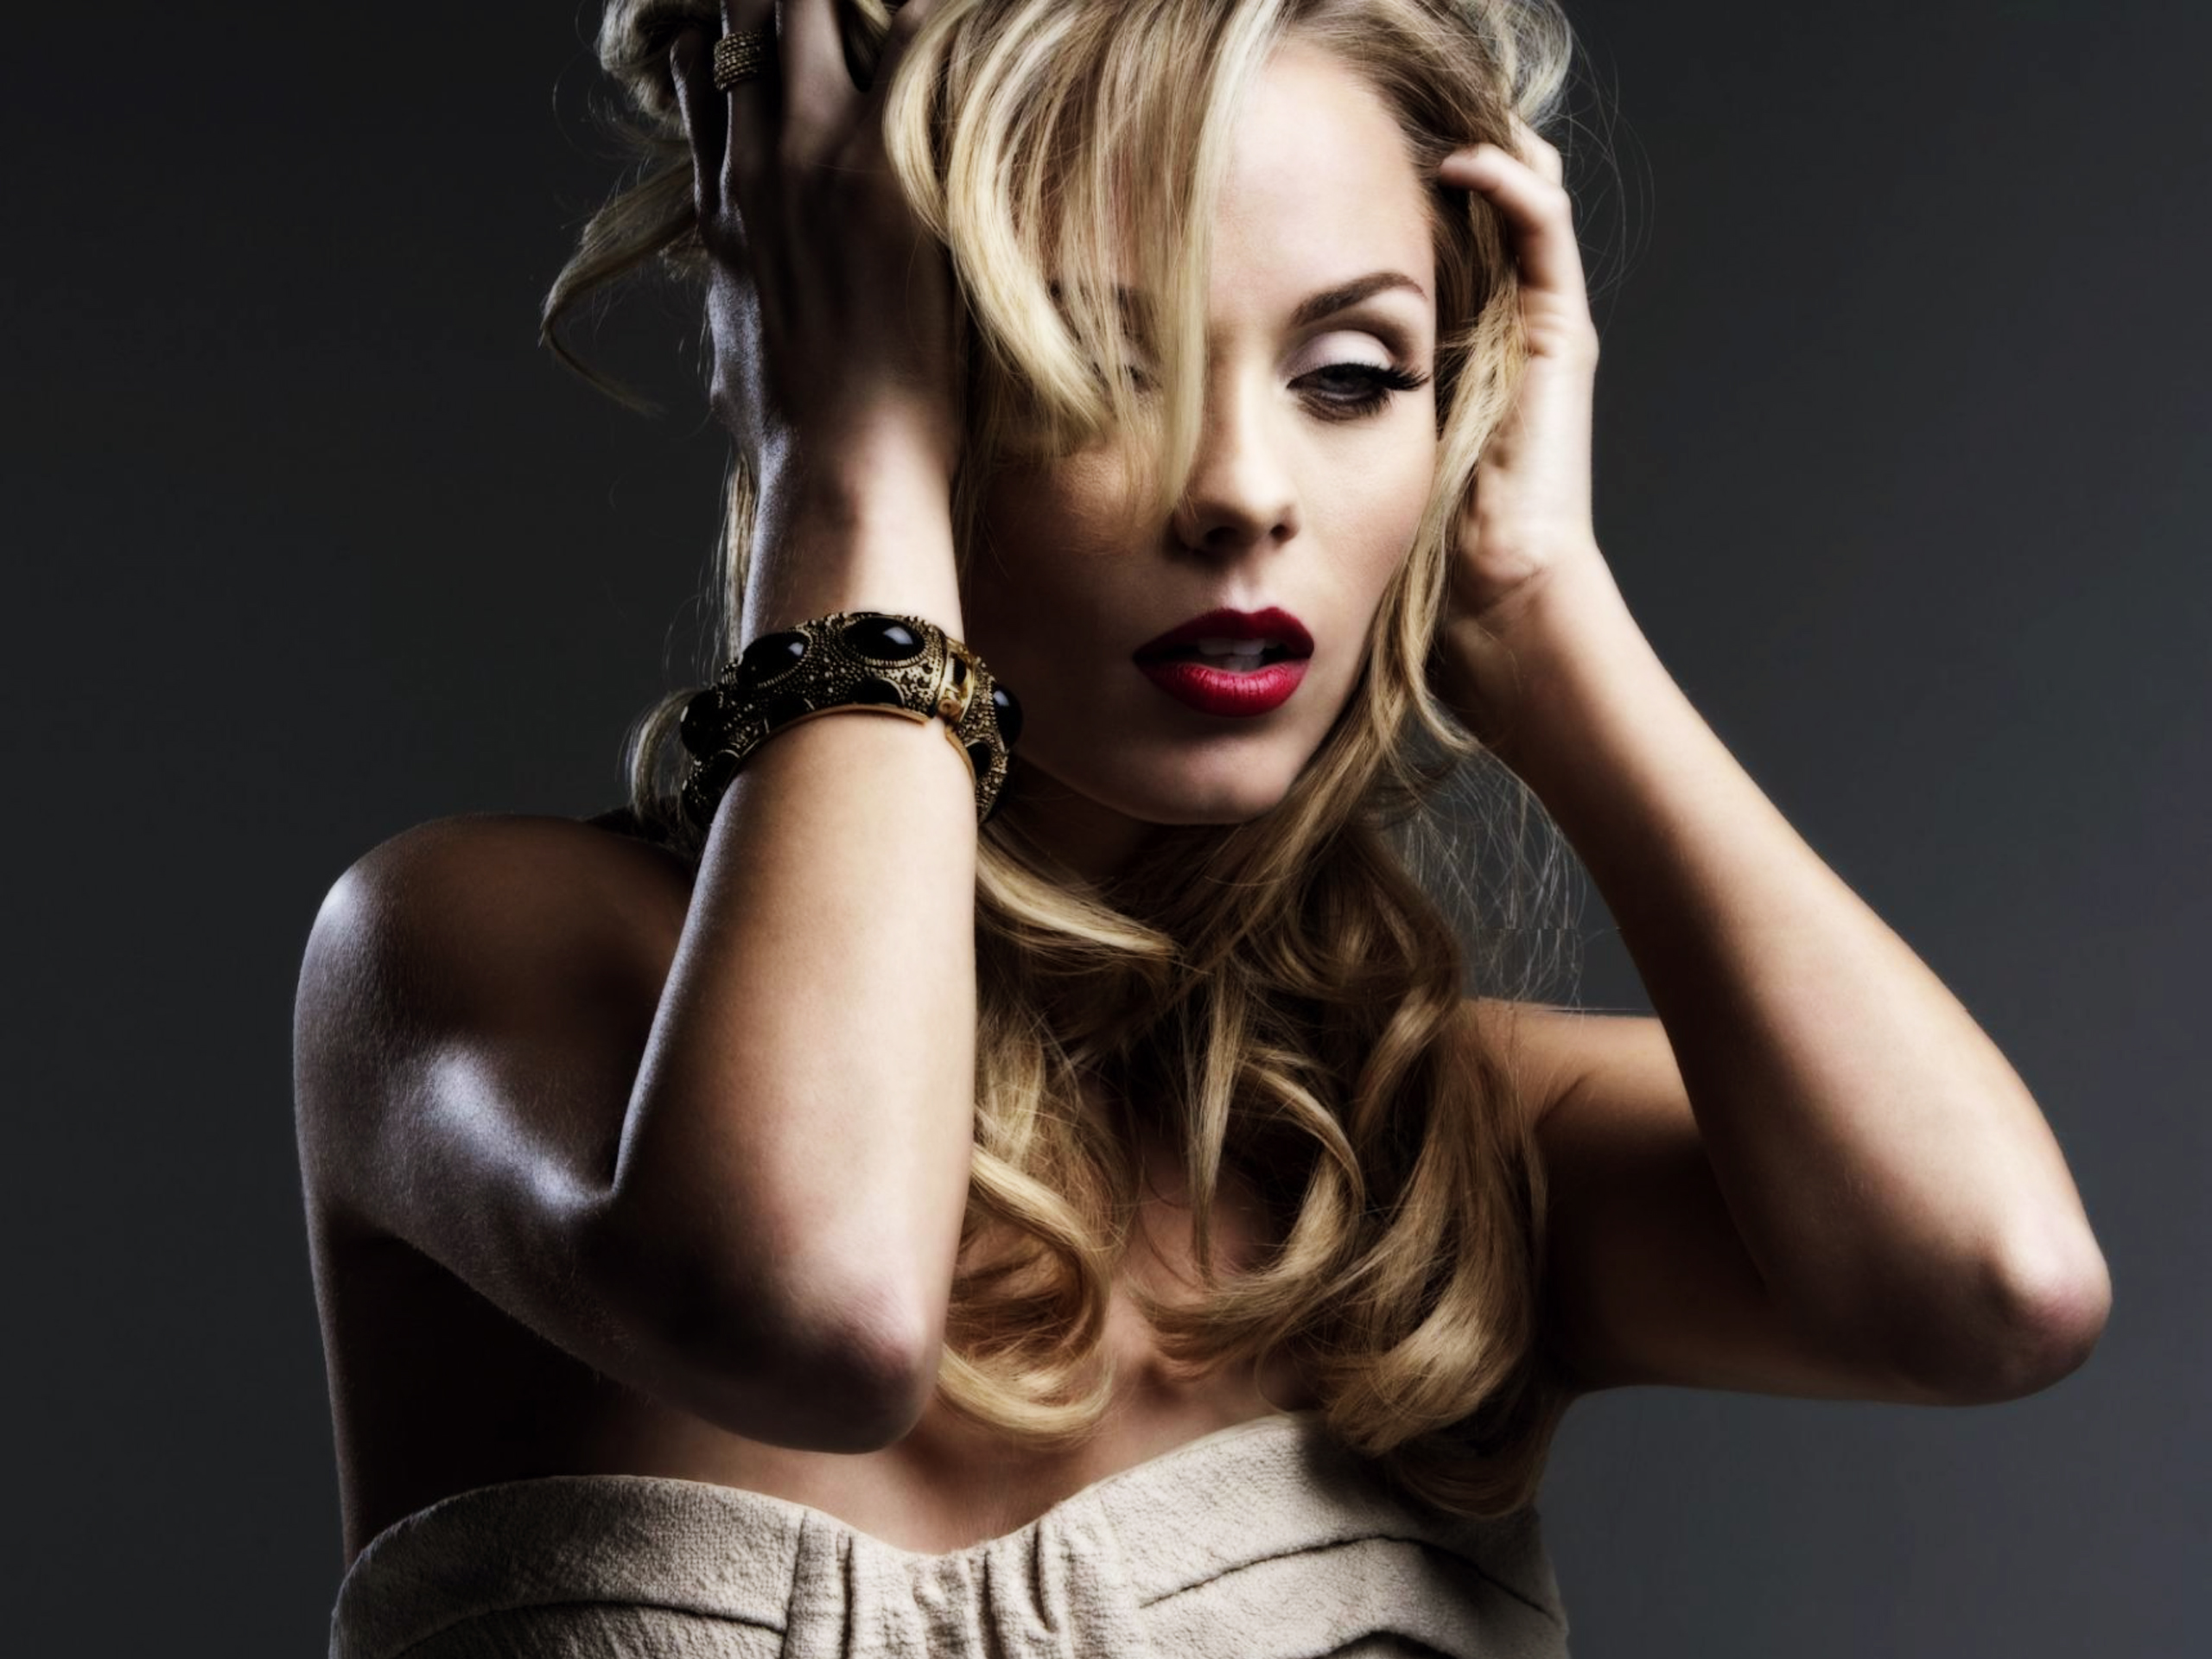 Laura Vandervoort Face Wallpaper 51085 1920x1080 px ~ HDWallSource.com